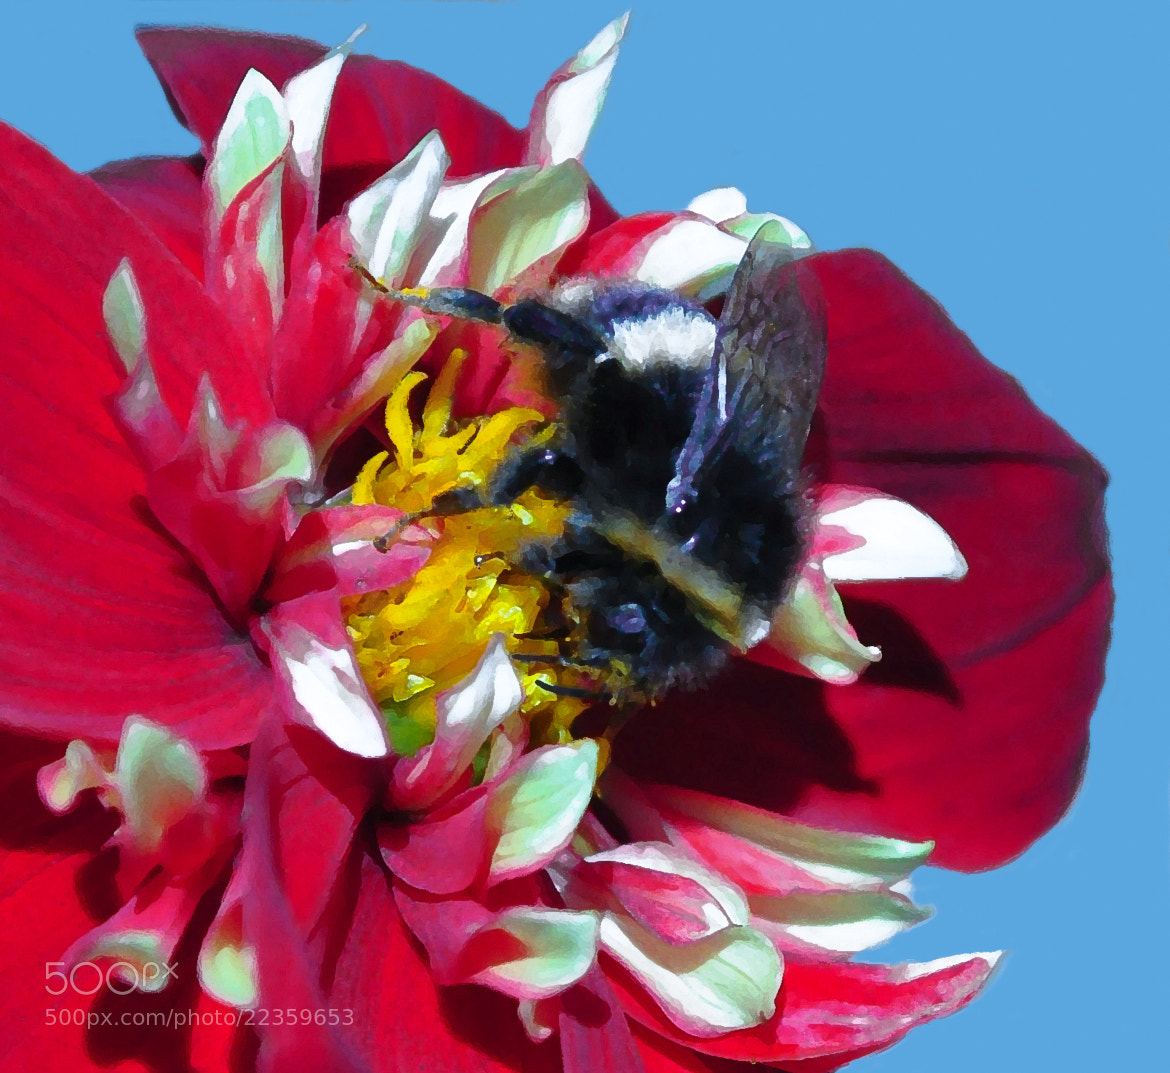 Photograph Arty Bumble Bee by Phil Scarlett on 500px